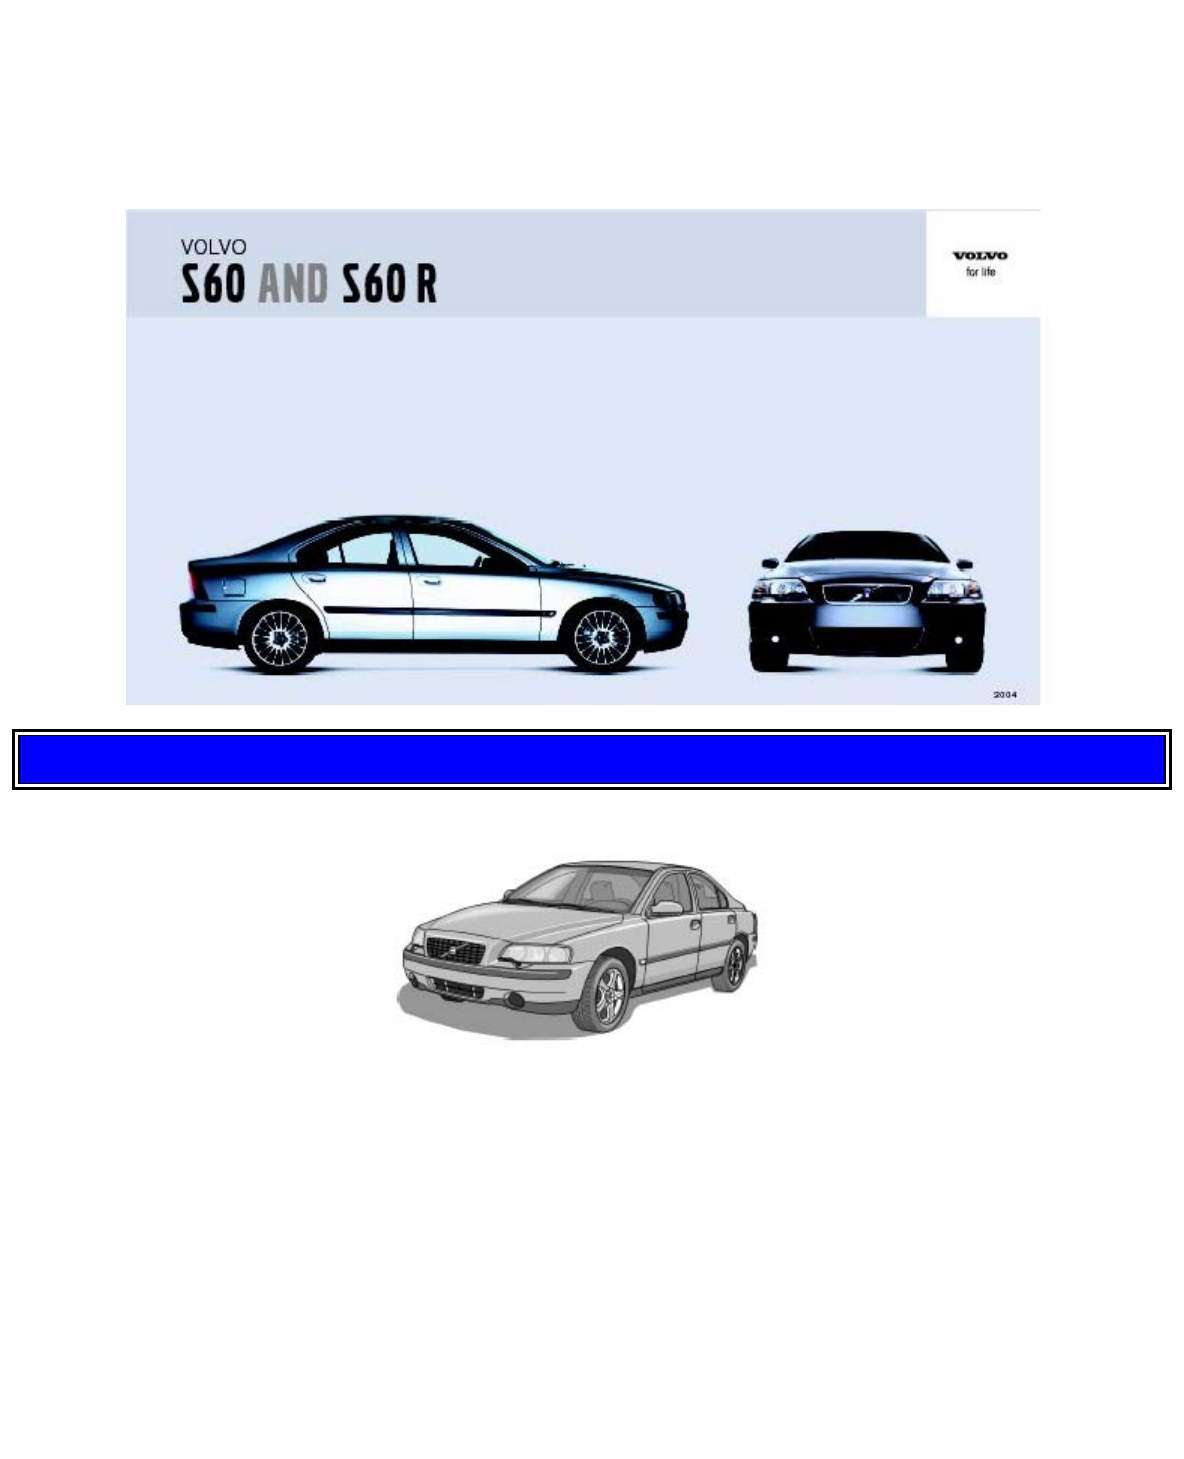 2004 volvo s60 owners manual pdf rh manuals co 2004 volvo s60 owners manual pdf 2004 volvo s60 2.5t owner's manual